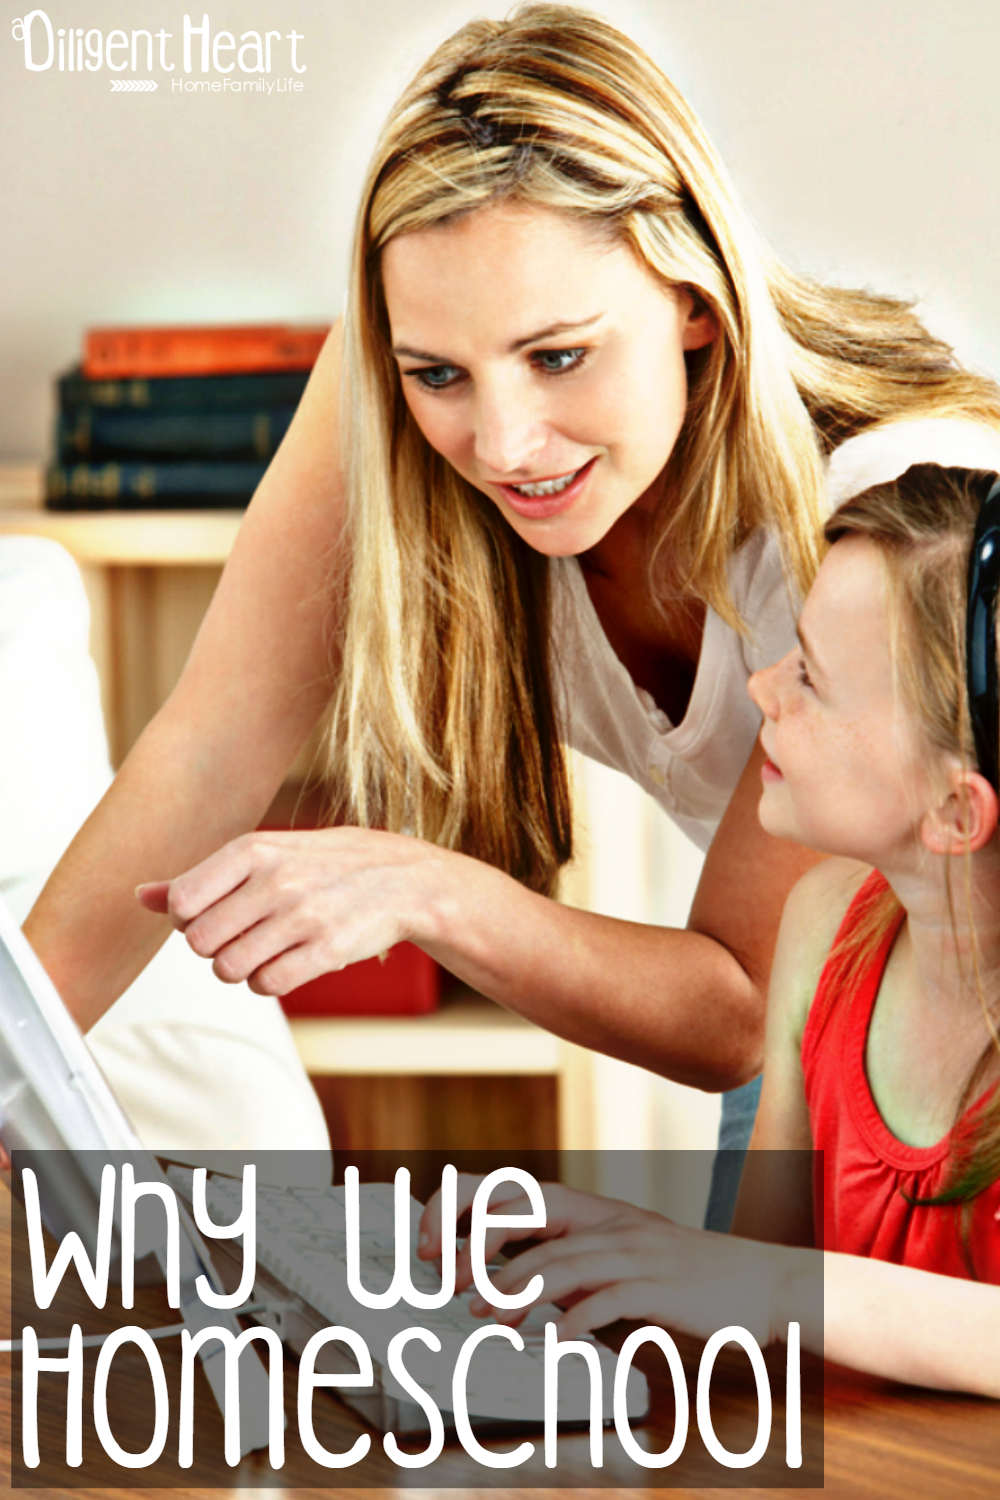 IN which I share a few of our reasons to choose homeschooling for our family. Why We Homeschool I adiligentheart.com